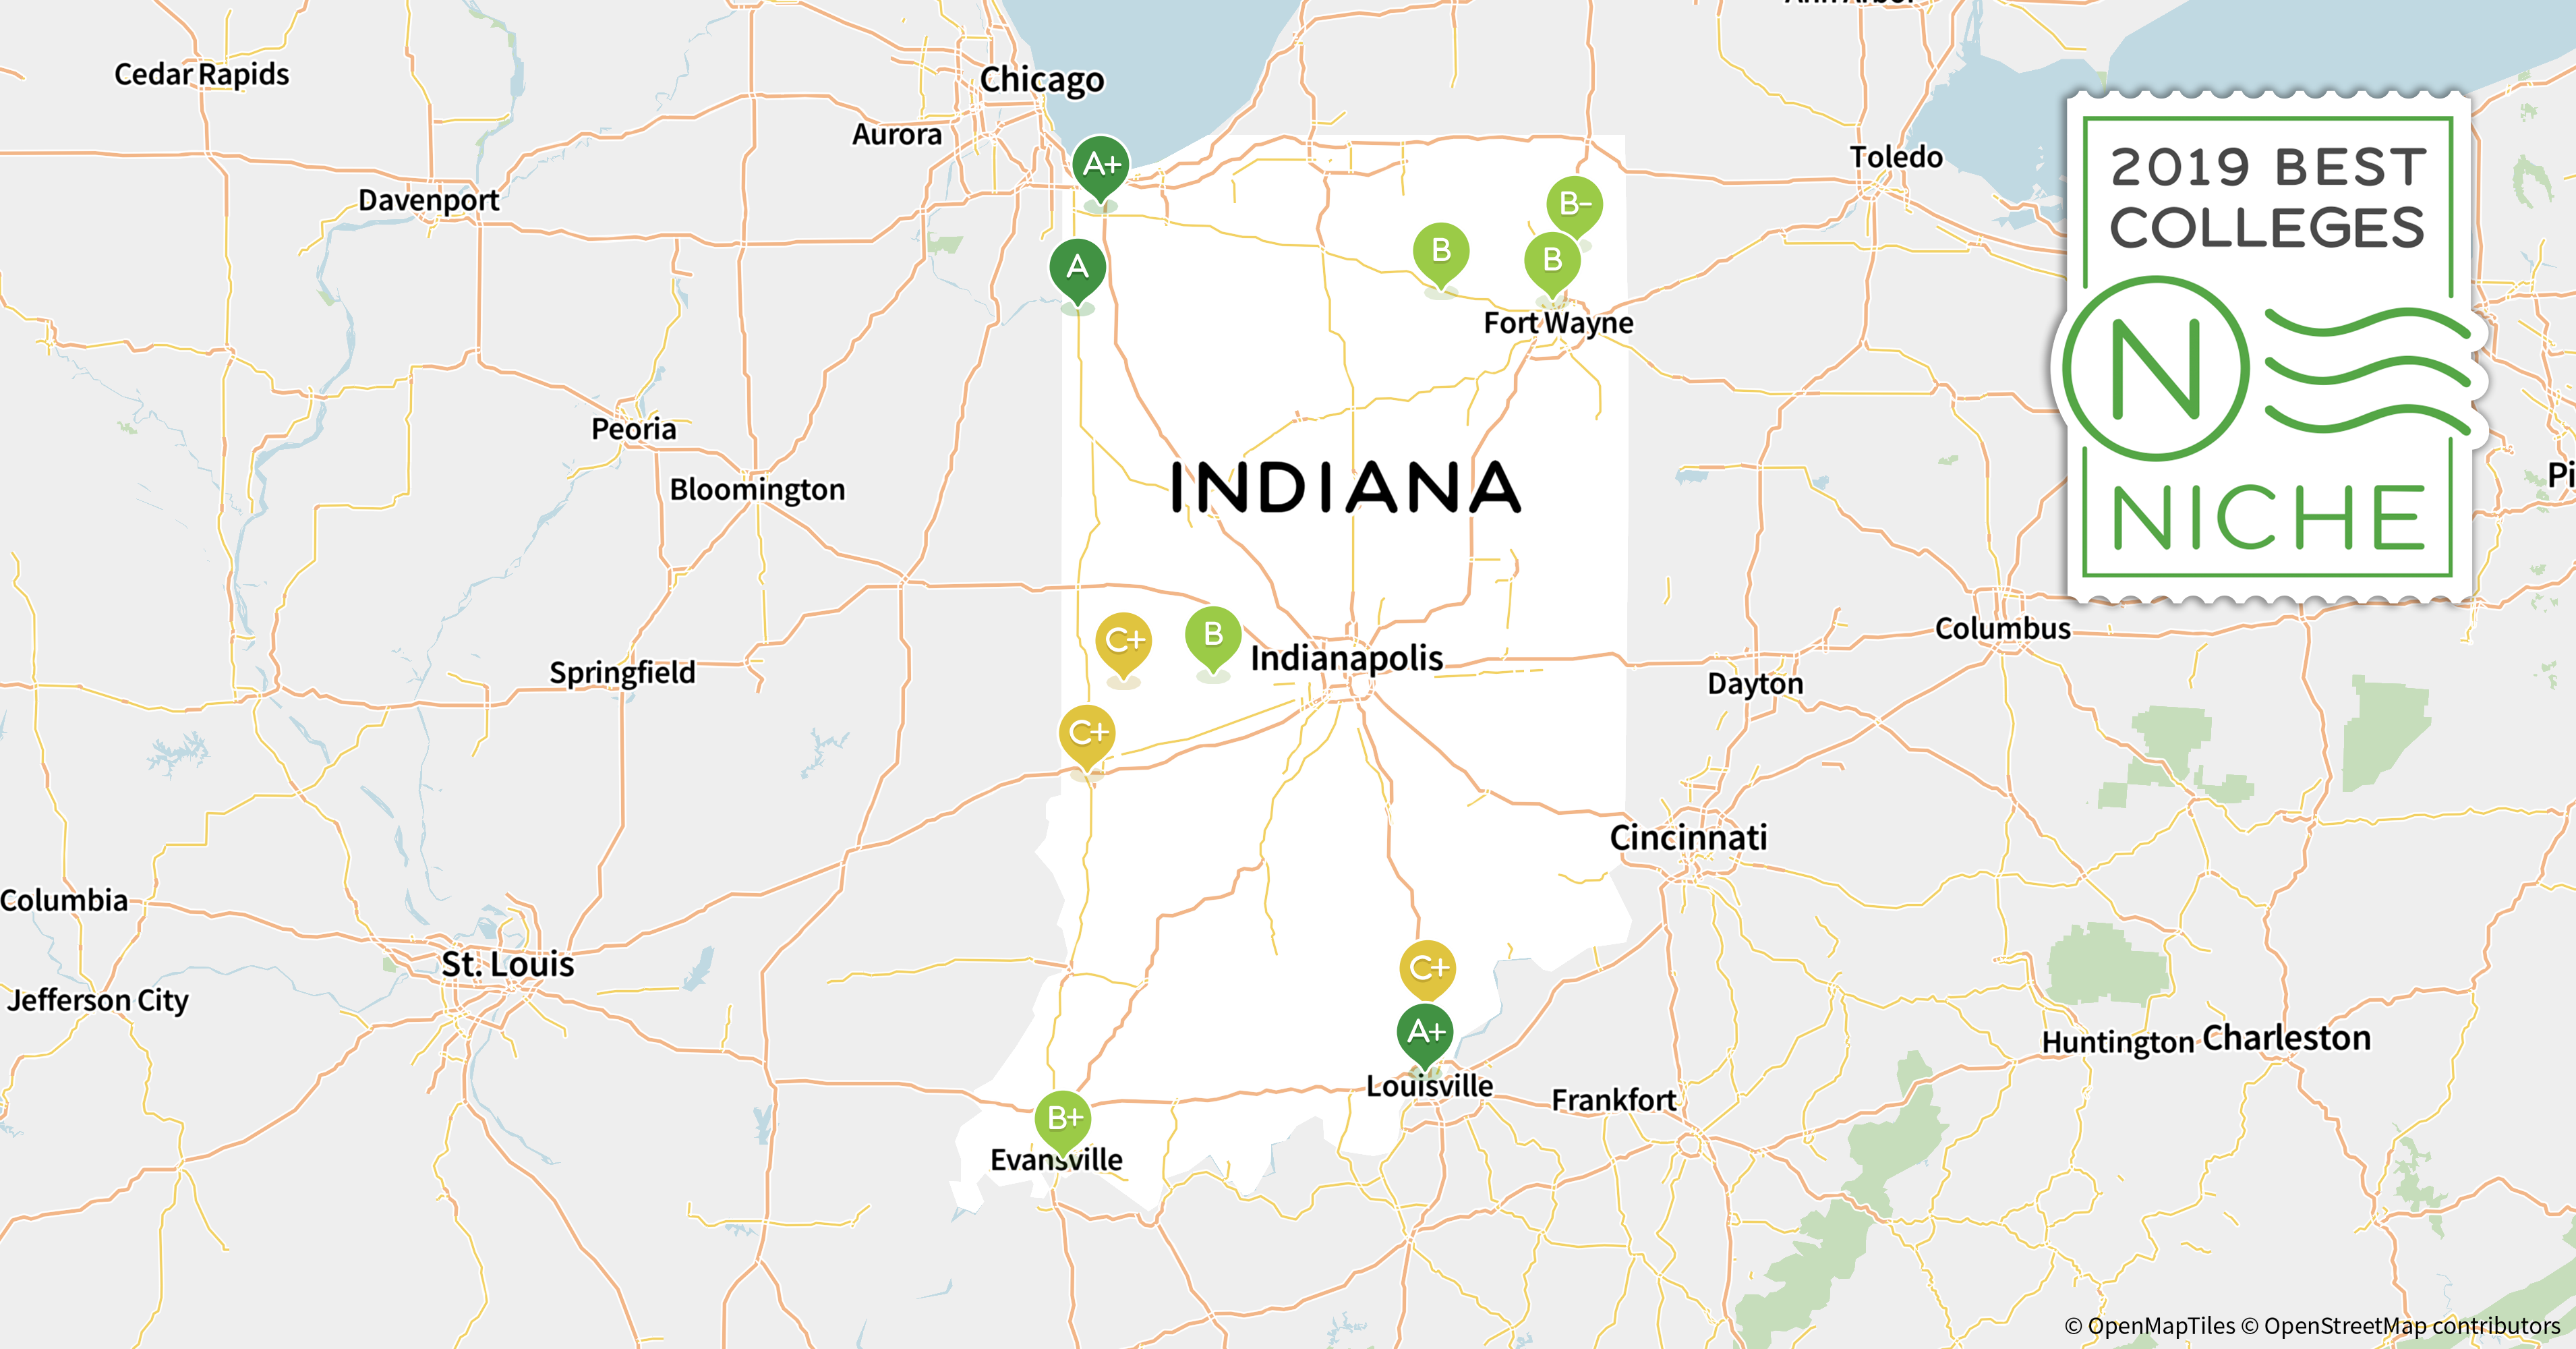 2019 Best Colleges in Indiana - Niche Indiana State Map Usa on new mexico map usa, virginia map usa, oregon map usa, indiana road map of usa, akron map usa, indiana on map, united states political map usa, indiana city usa, tulsa map usa, oklahoma map usa, michigan map usa, montana map usa, yale map usa, columbia map usa, kentucky map usa, minnesota map usa, show map of indiana usa, iowa map usa, mississippi map usa, evansville map usa,